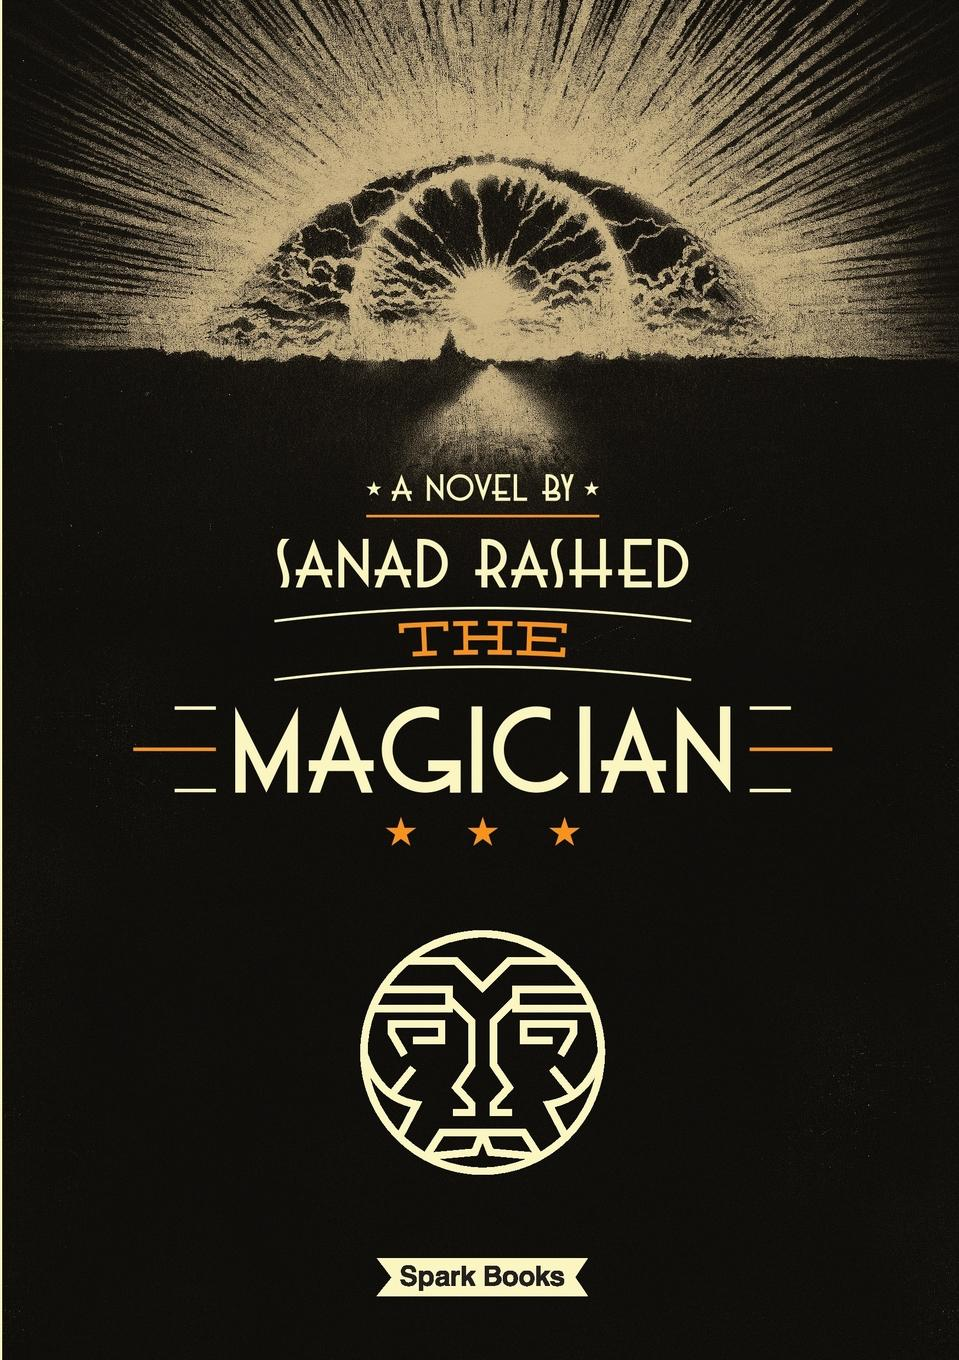 Sanad Rashed The Magician journey to the end of the world